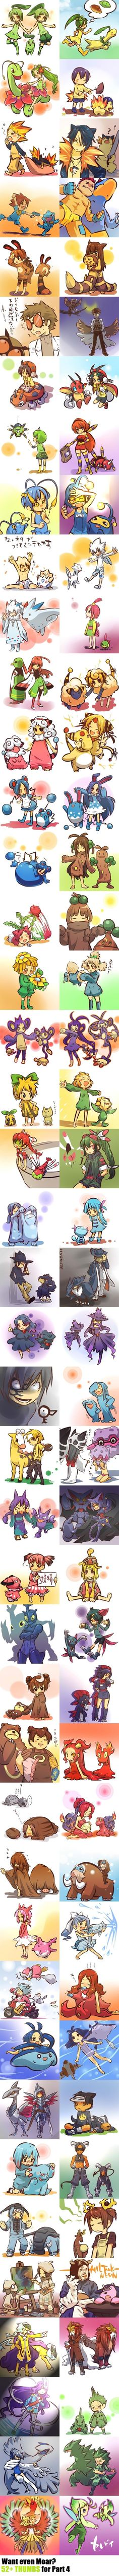 Pokémon evolving with their trainers... ADORABLE! I had my own idea similar to this for Halloween someday, with a cosplay-like thing based off one of my favorite Pokémon. I had Dratini, Riolu, Dragonite, Lugia or Torchic in mind. :)